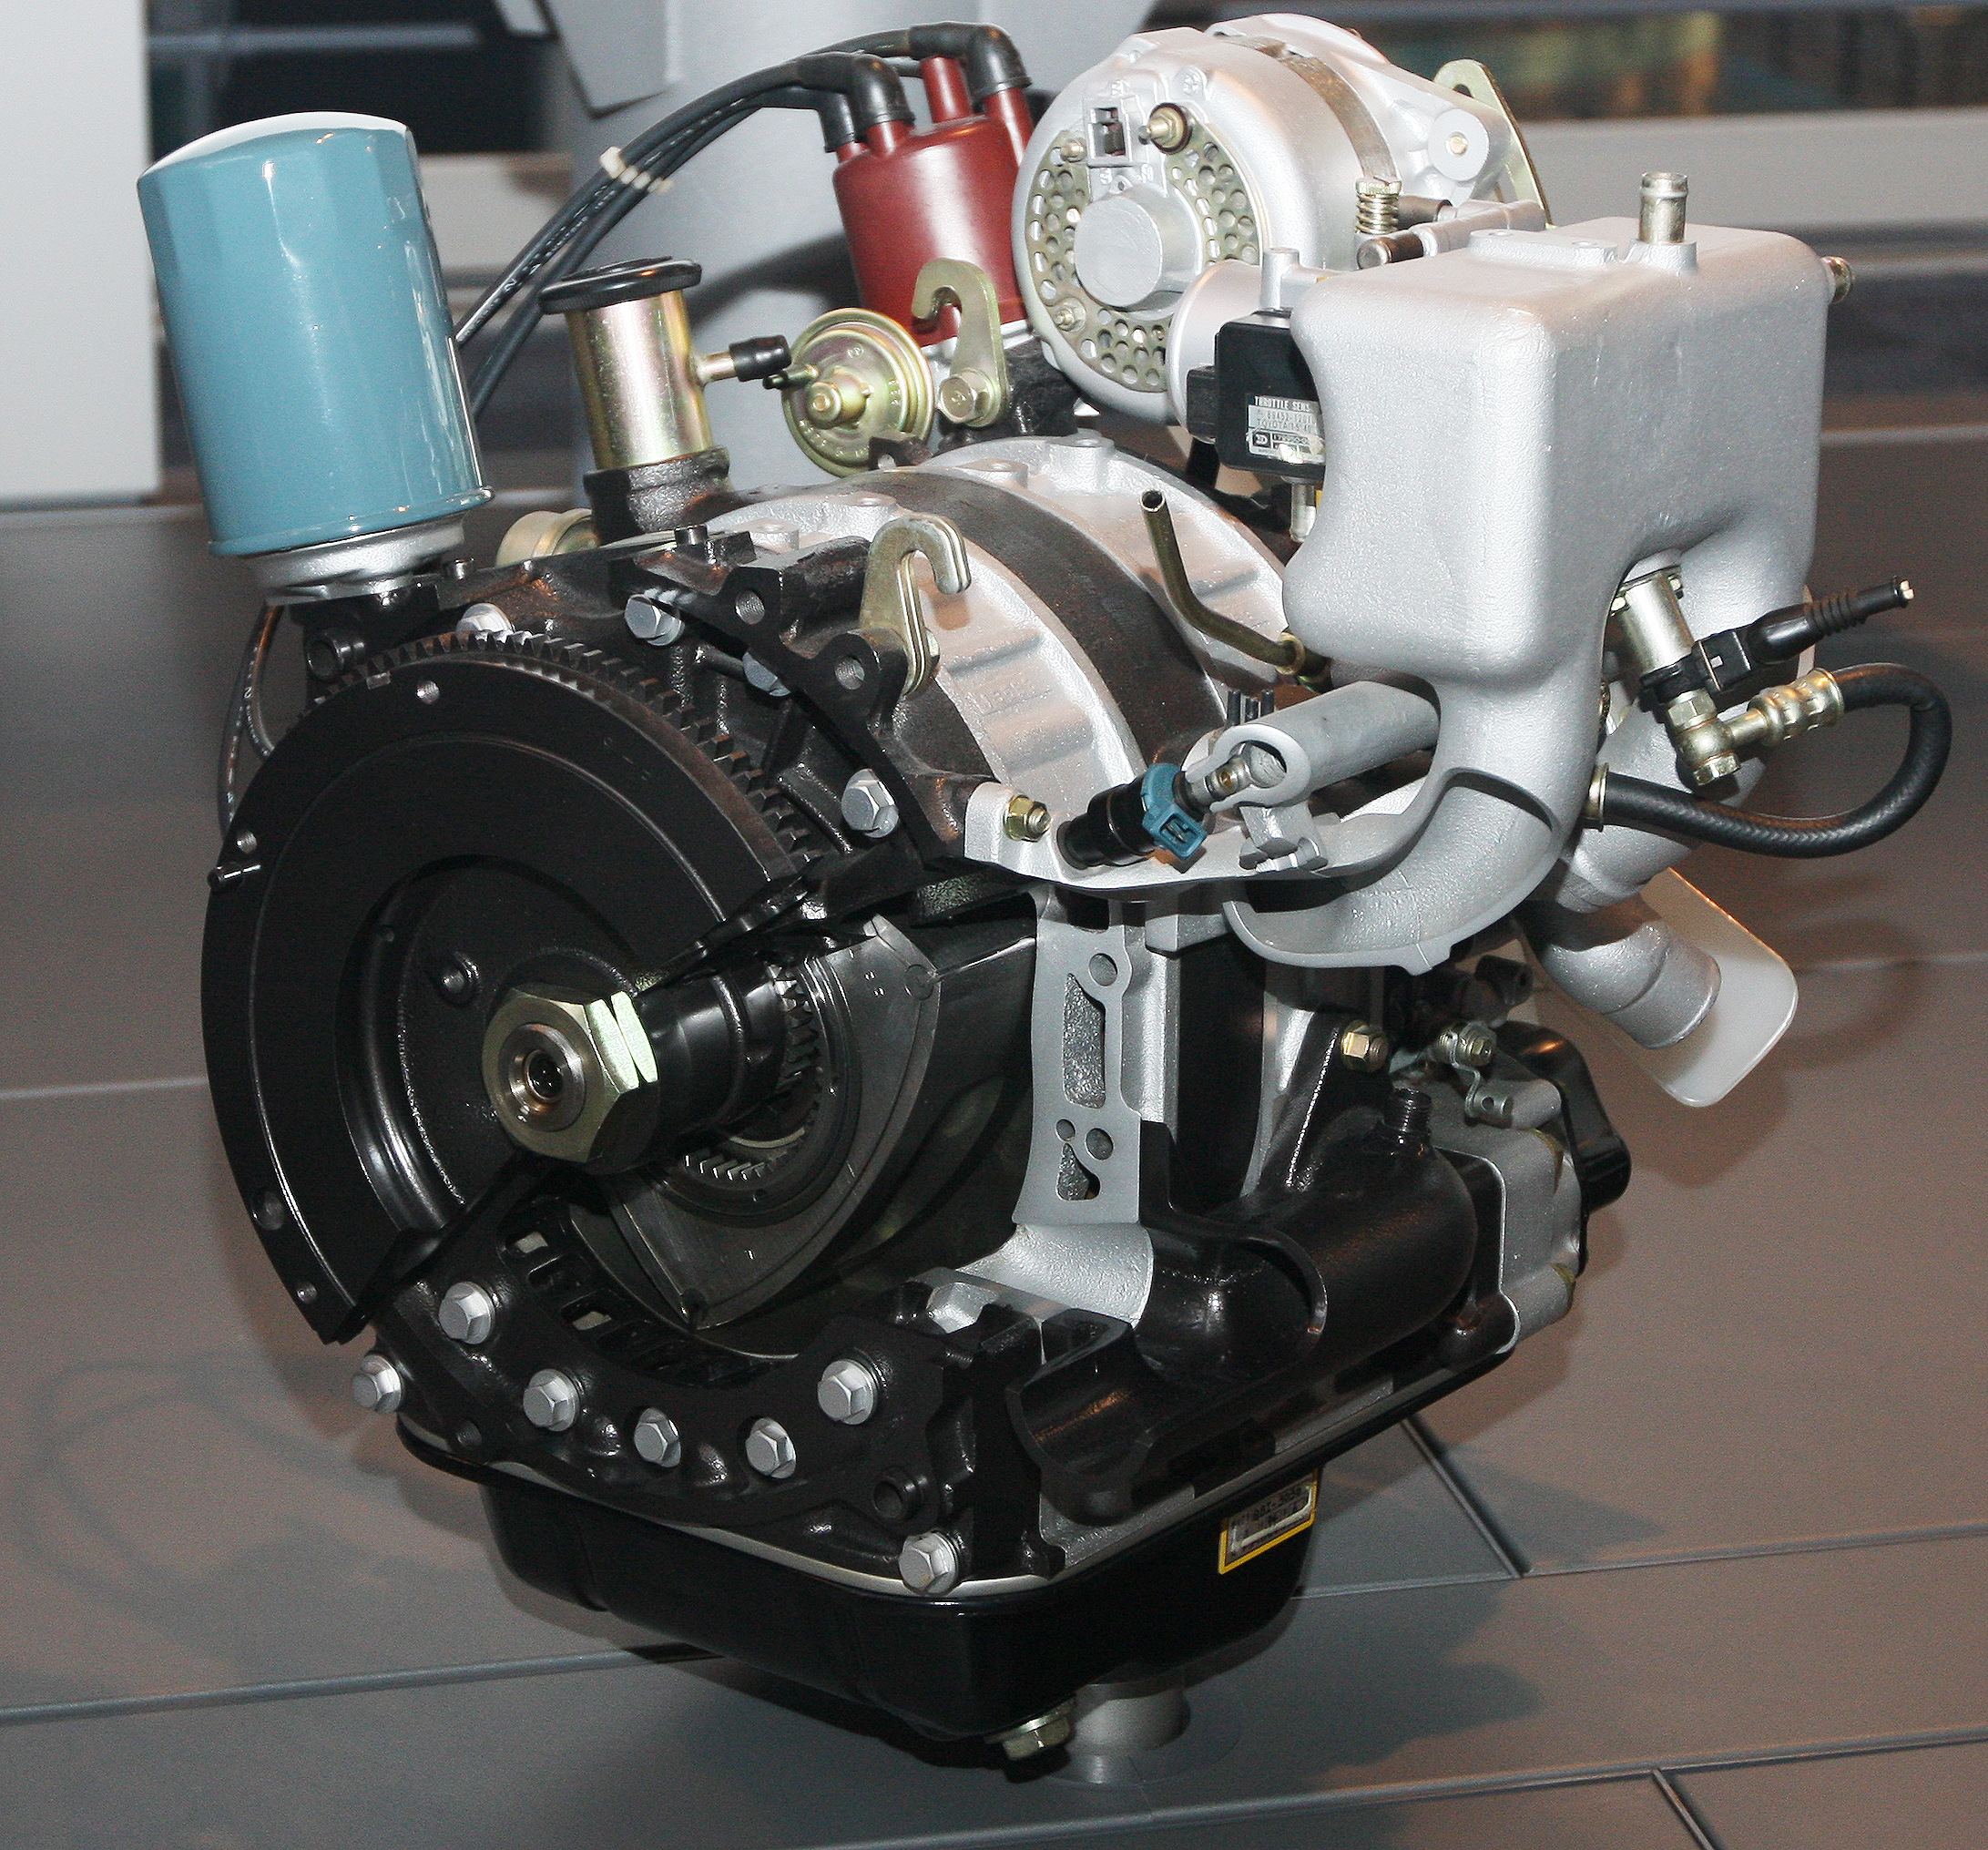 13b Engine: File:Toyota Rotary Engine (experimental Model).jpg